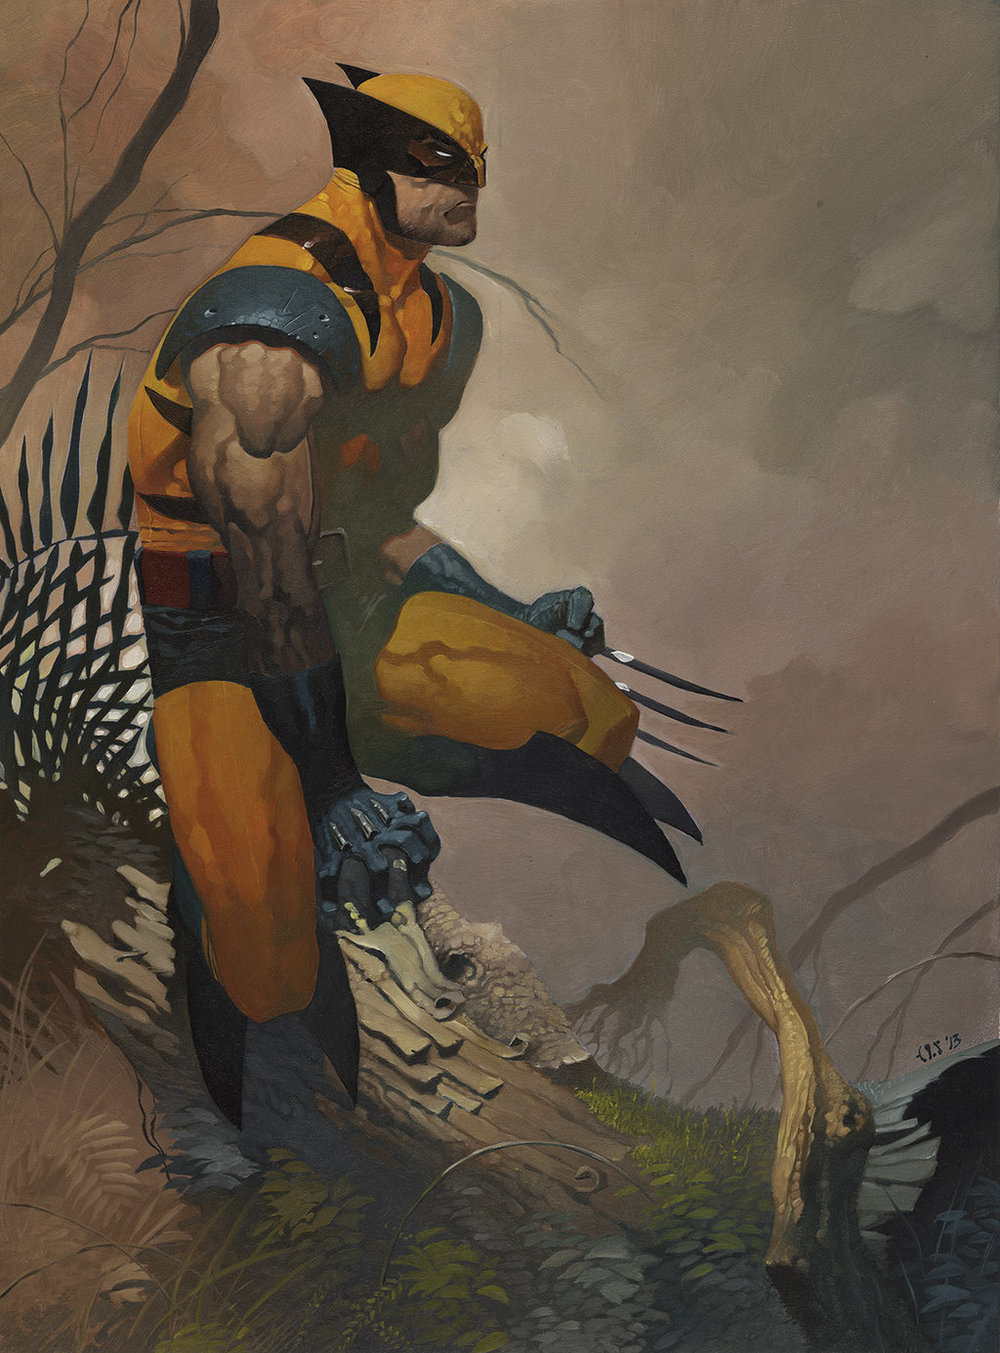 wolverine_oils_by_christopherstevens-d7fff6w.jpg